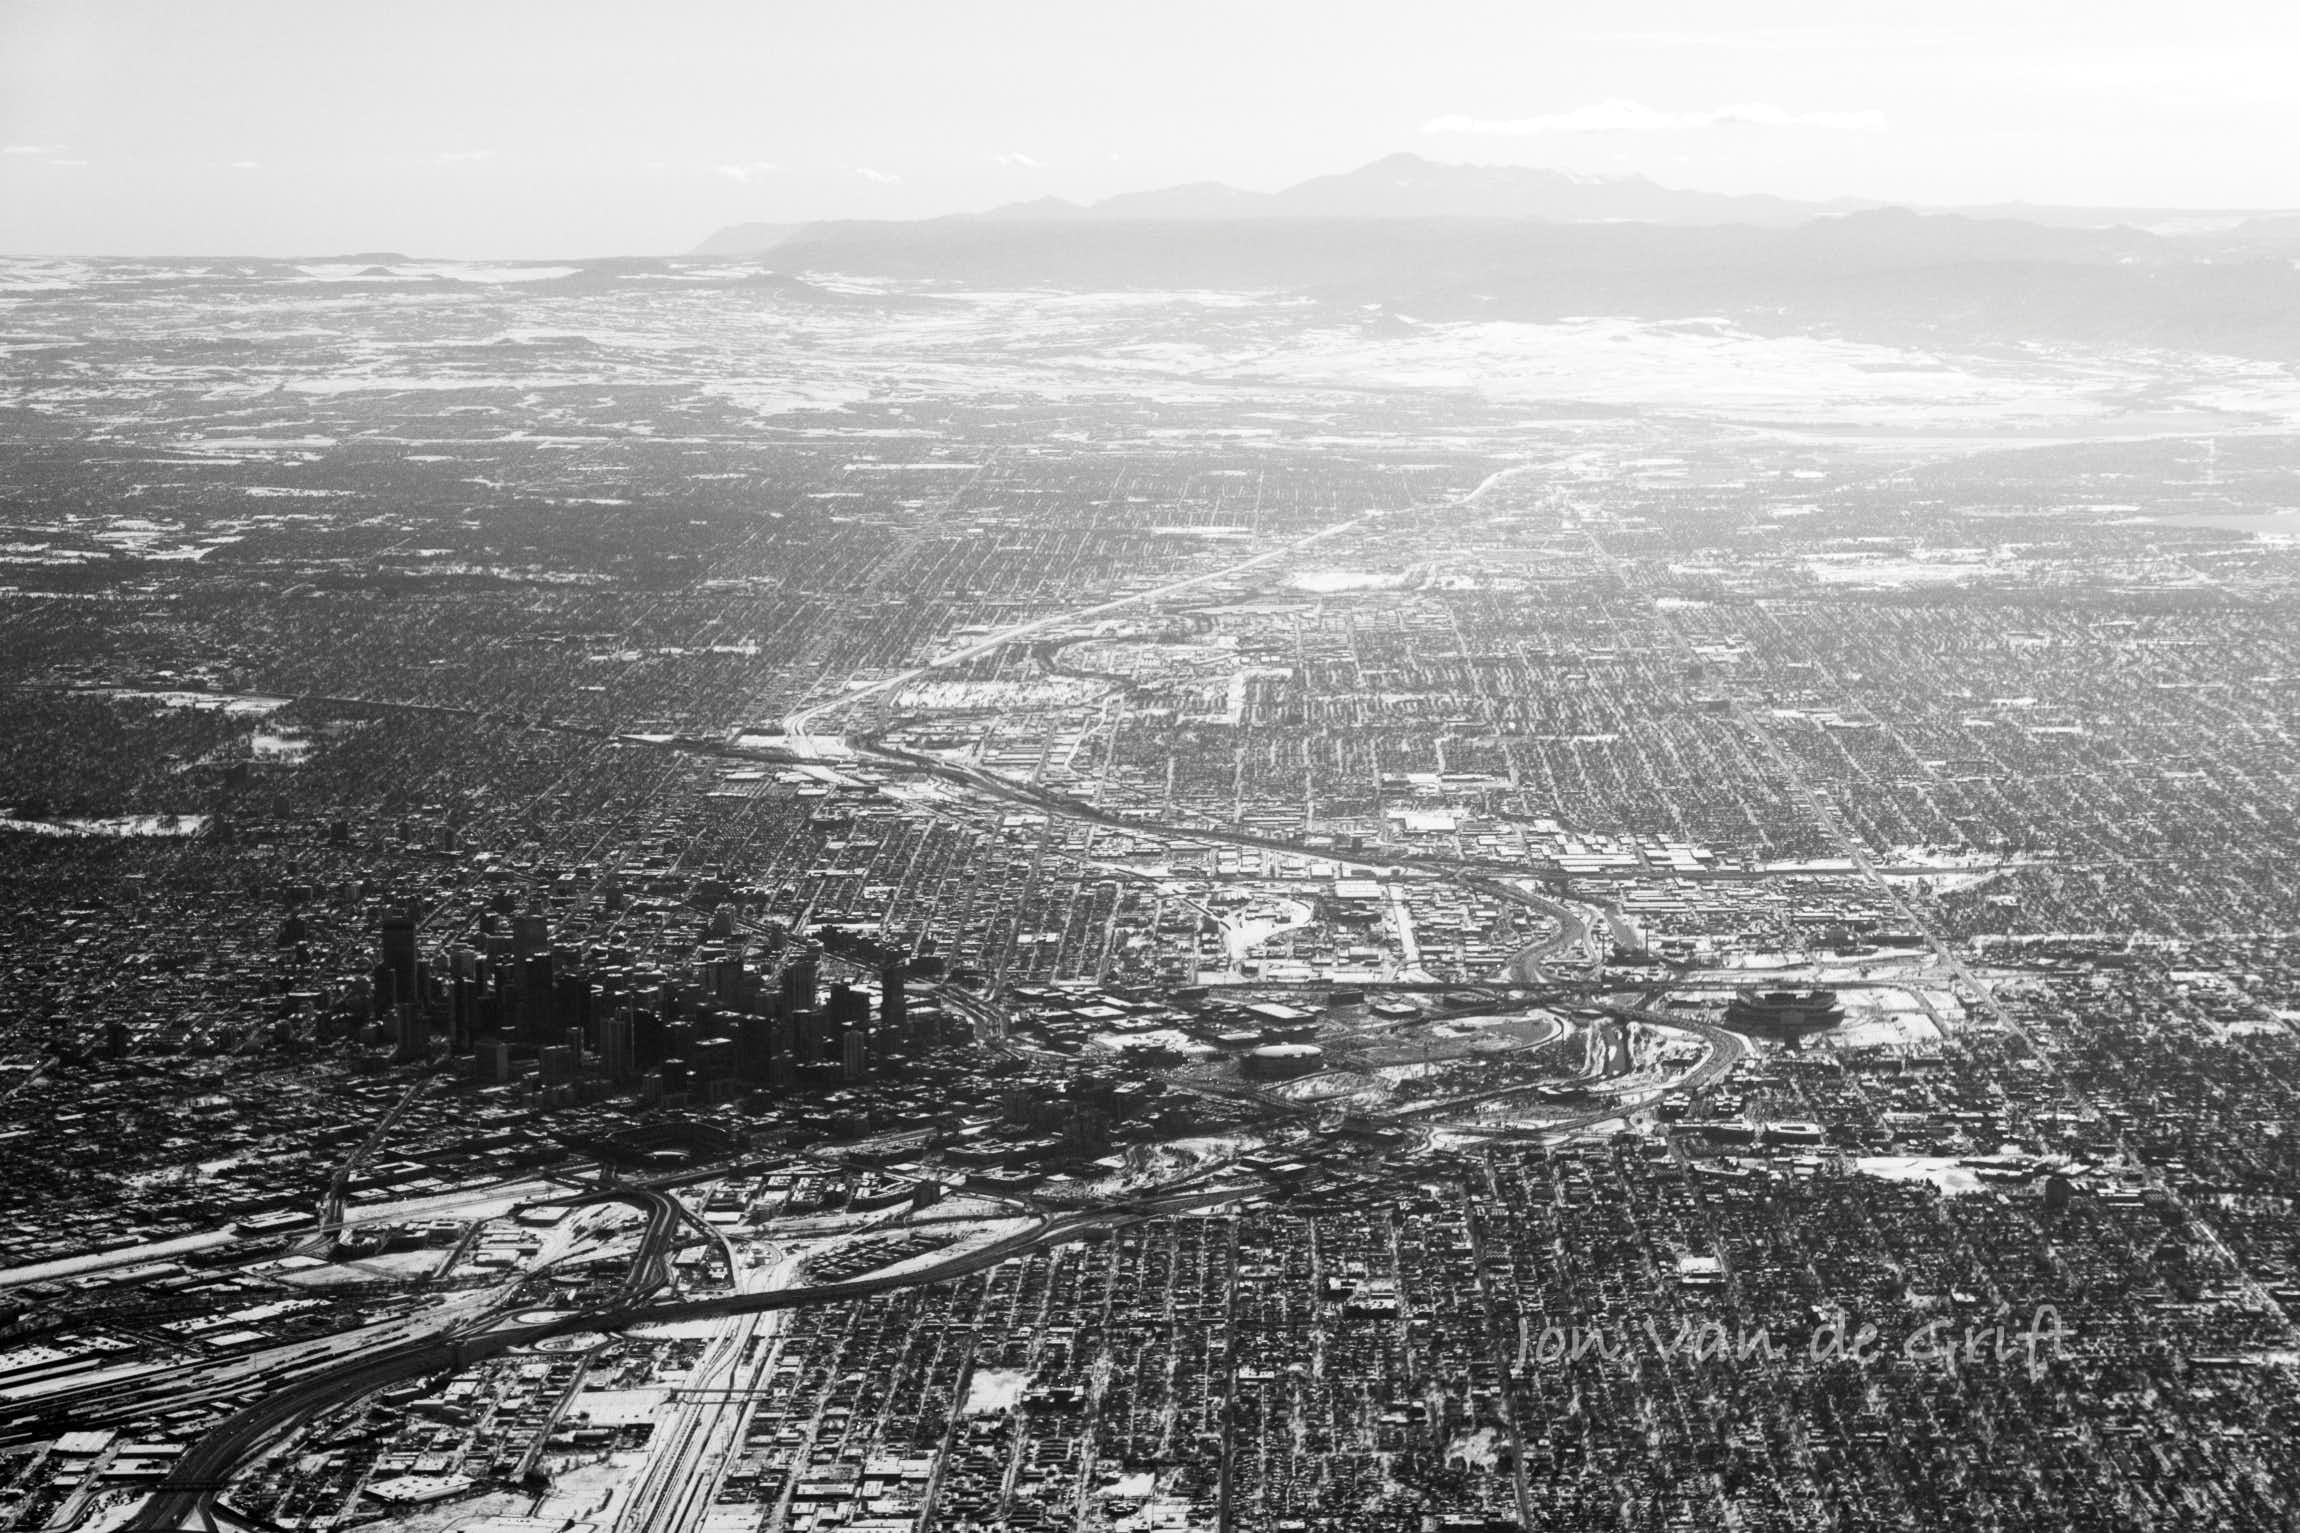 Black and white aerial photograph of the city of Denver near the Colorado Front Range.